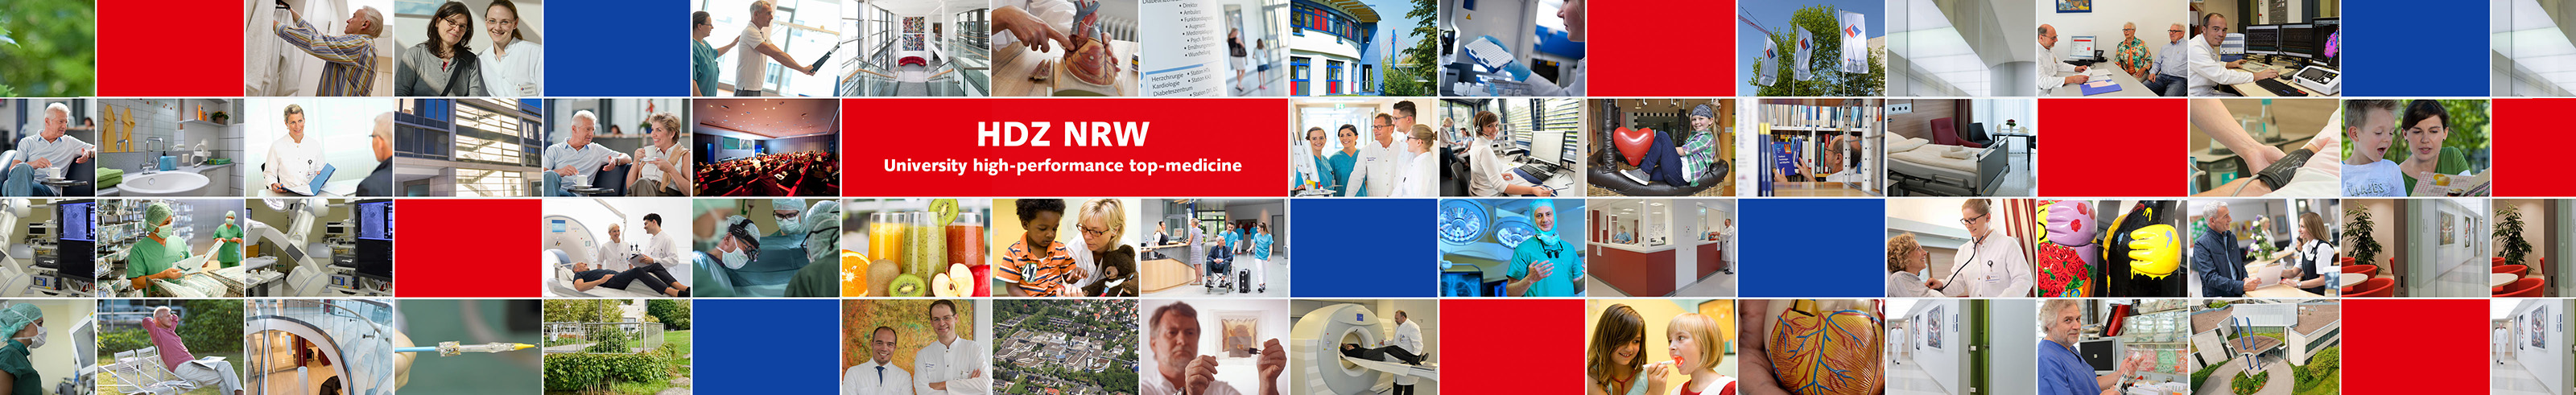 HDZ NRW – University high-performance top-medicine